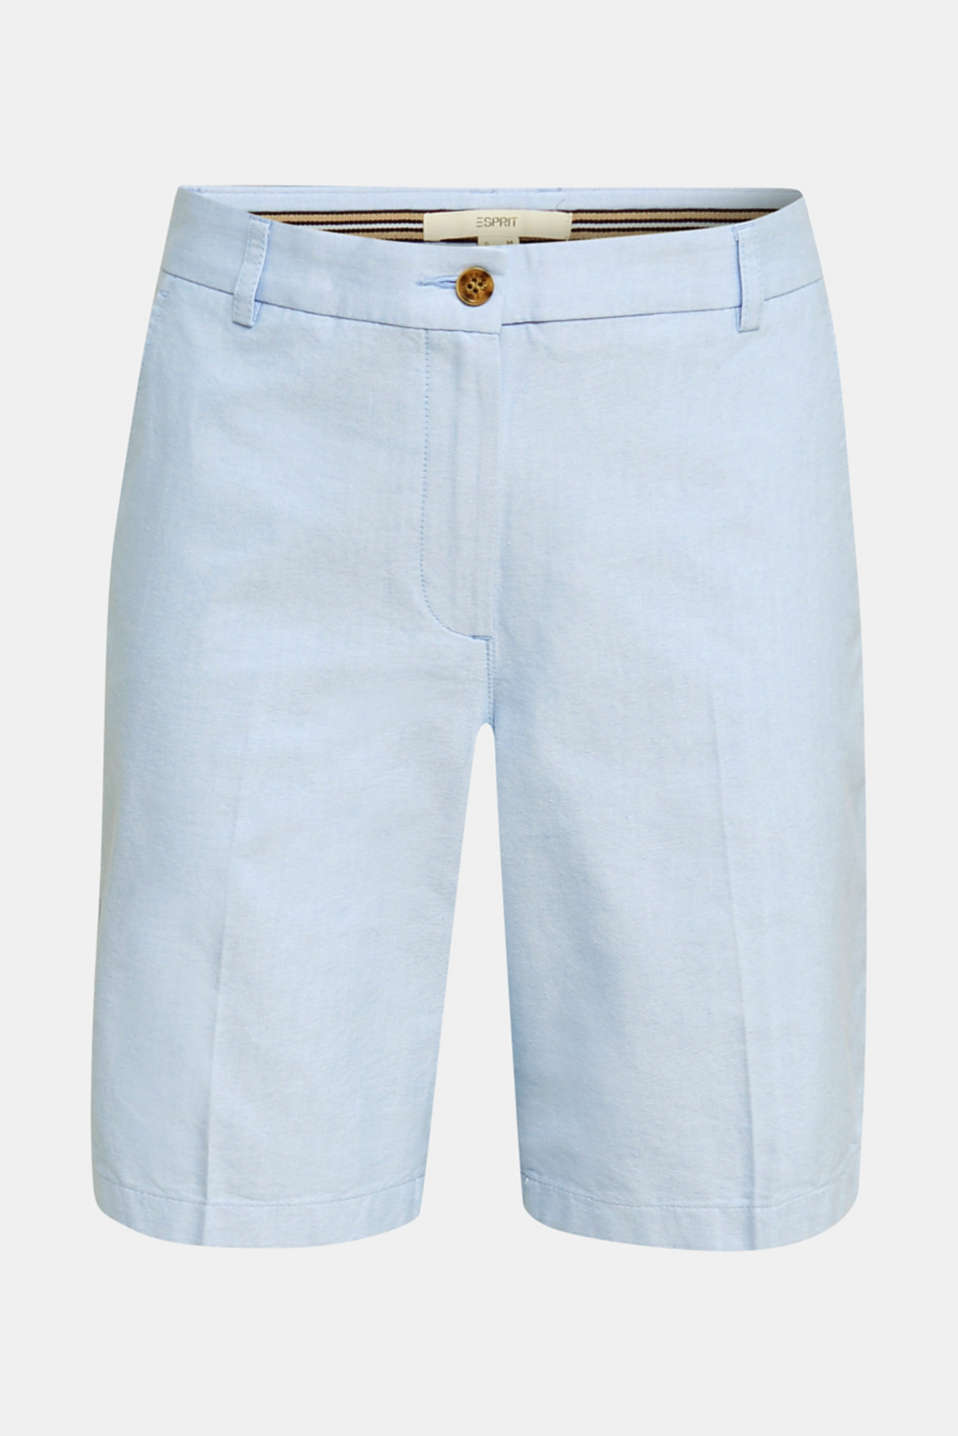 Chambray shorts made of 100% cotton, LIGHT BLUE, detail image number 6